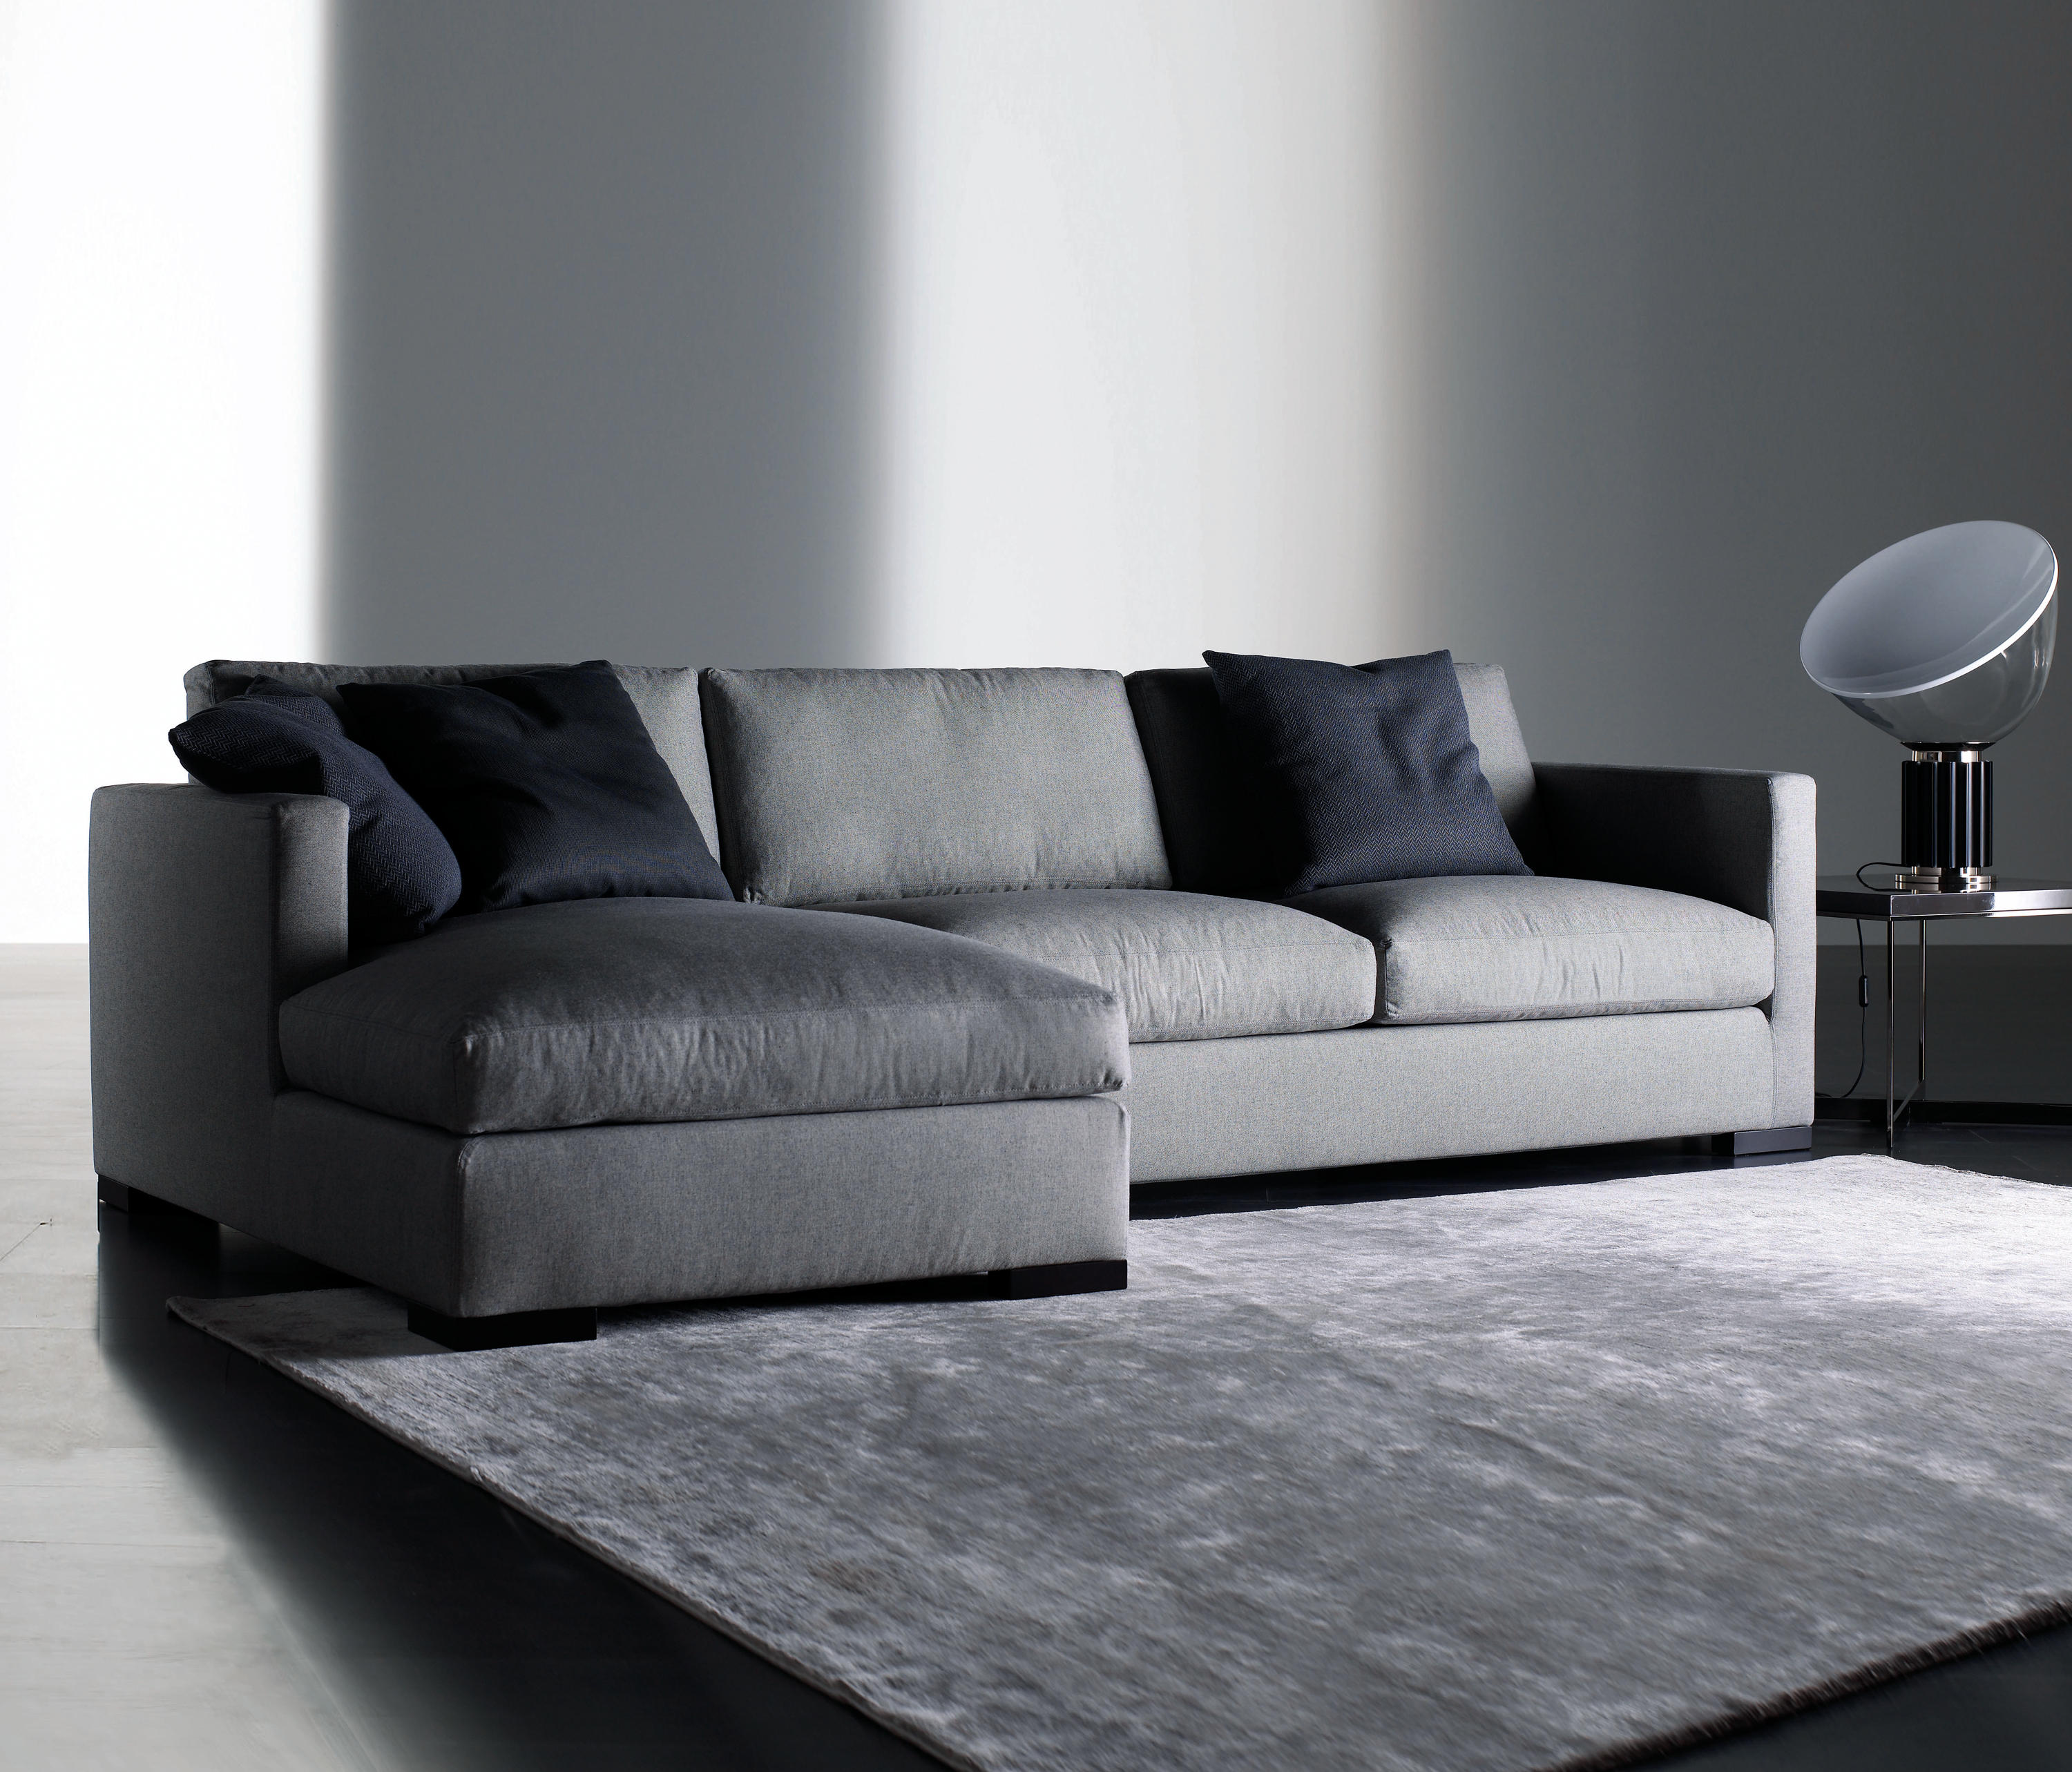 belmon modular sofa sofas from meridiani architonic. Black Bedroom Furniture Sets. Home Design Ideas